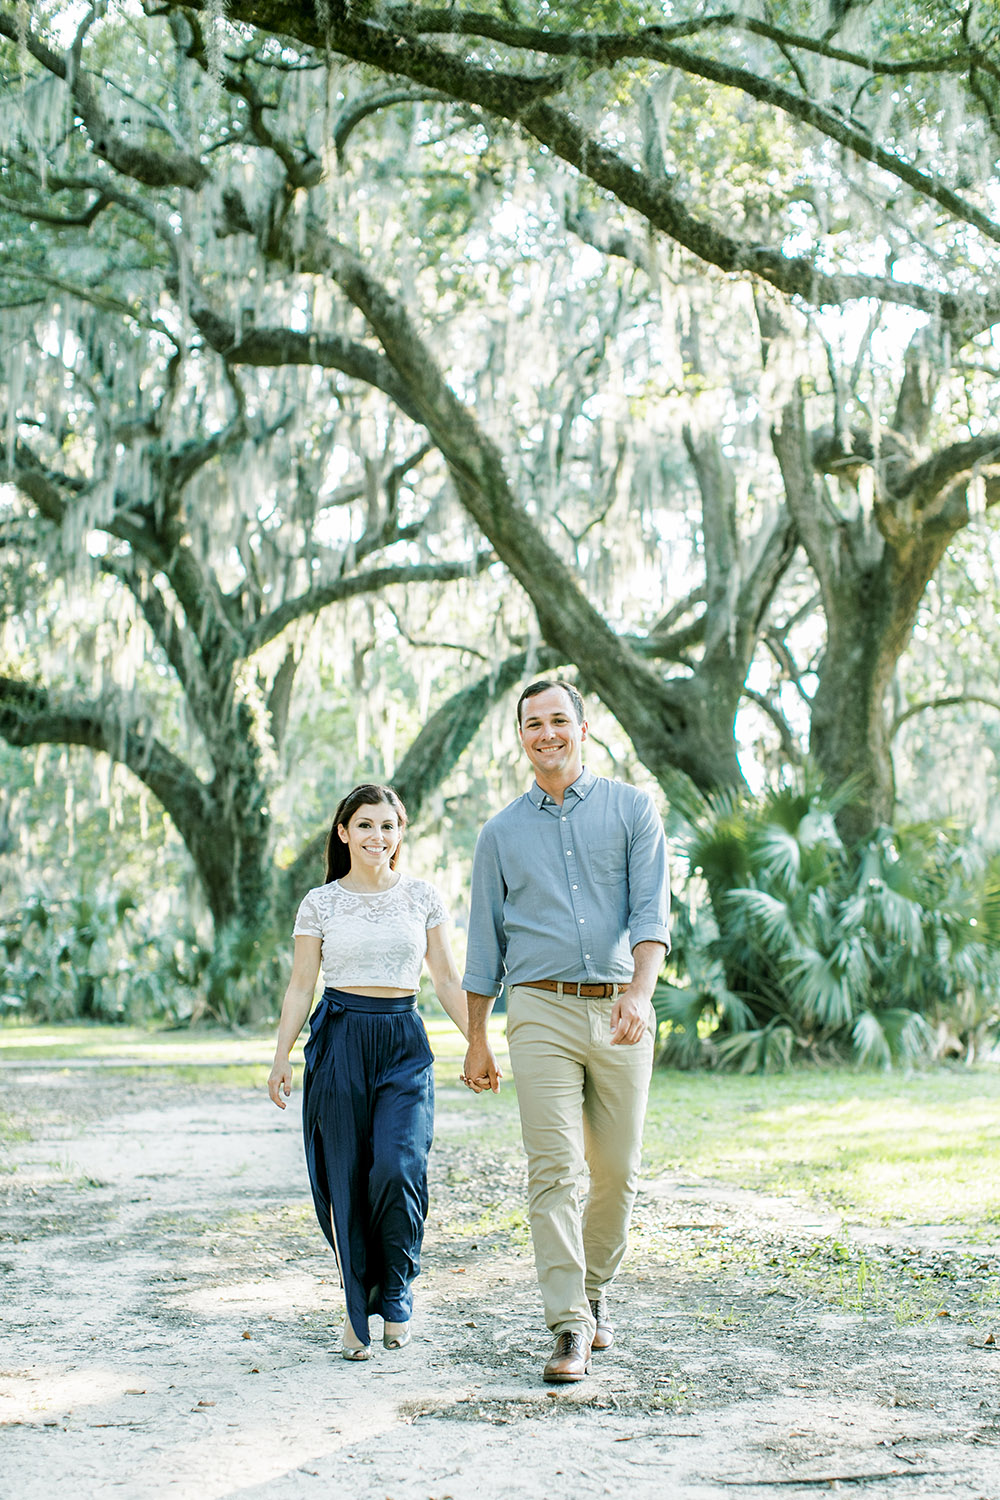 Engagement photo in New Orleans City Park